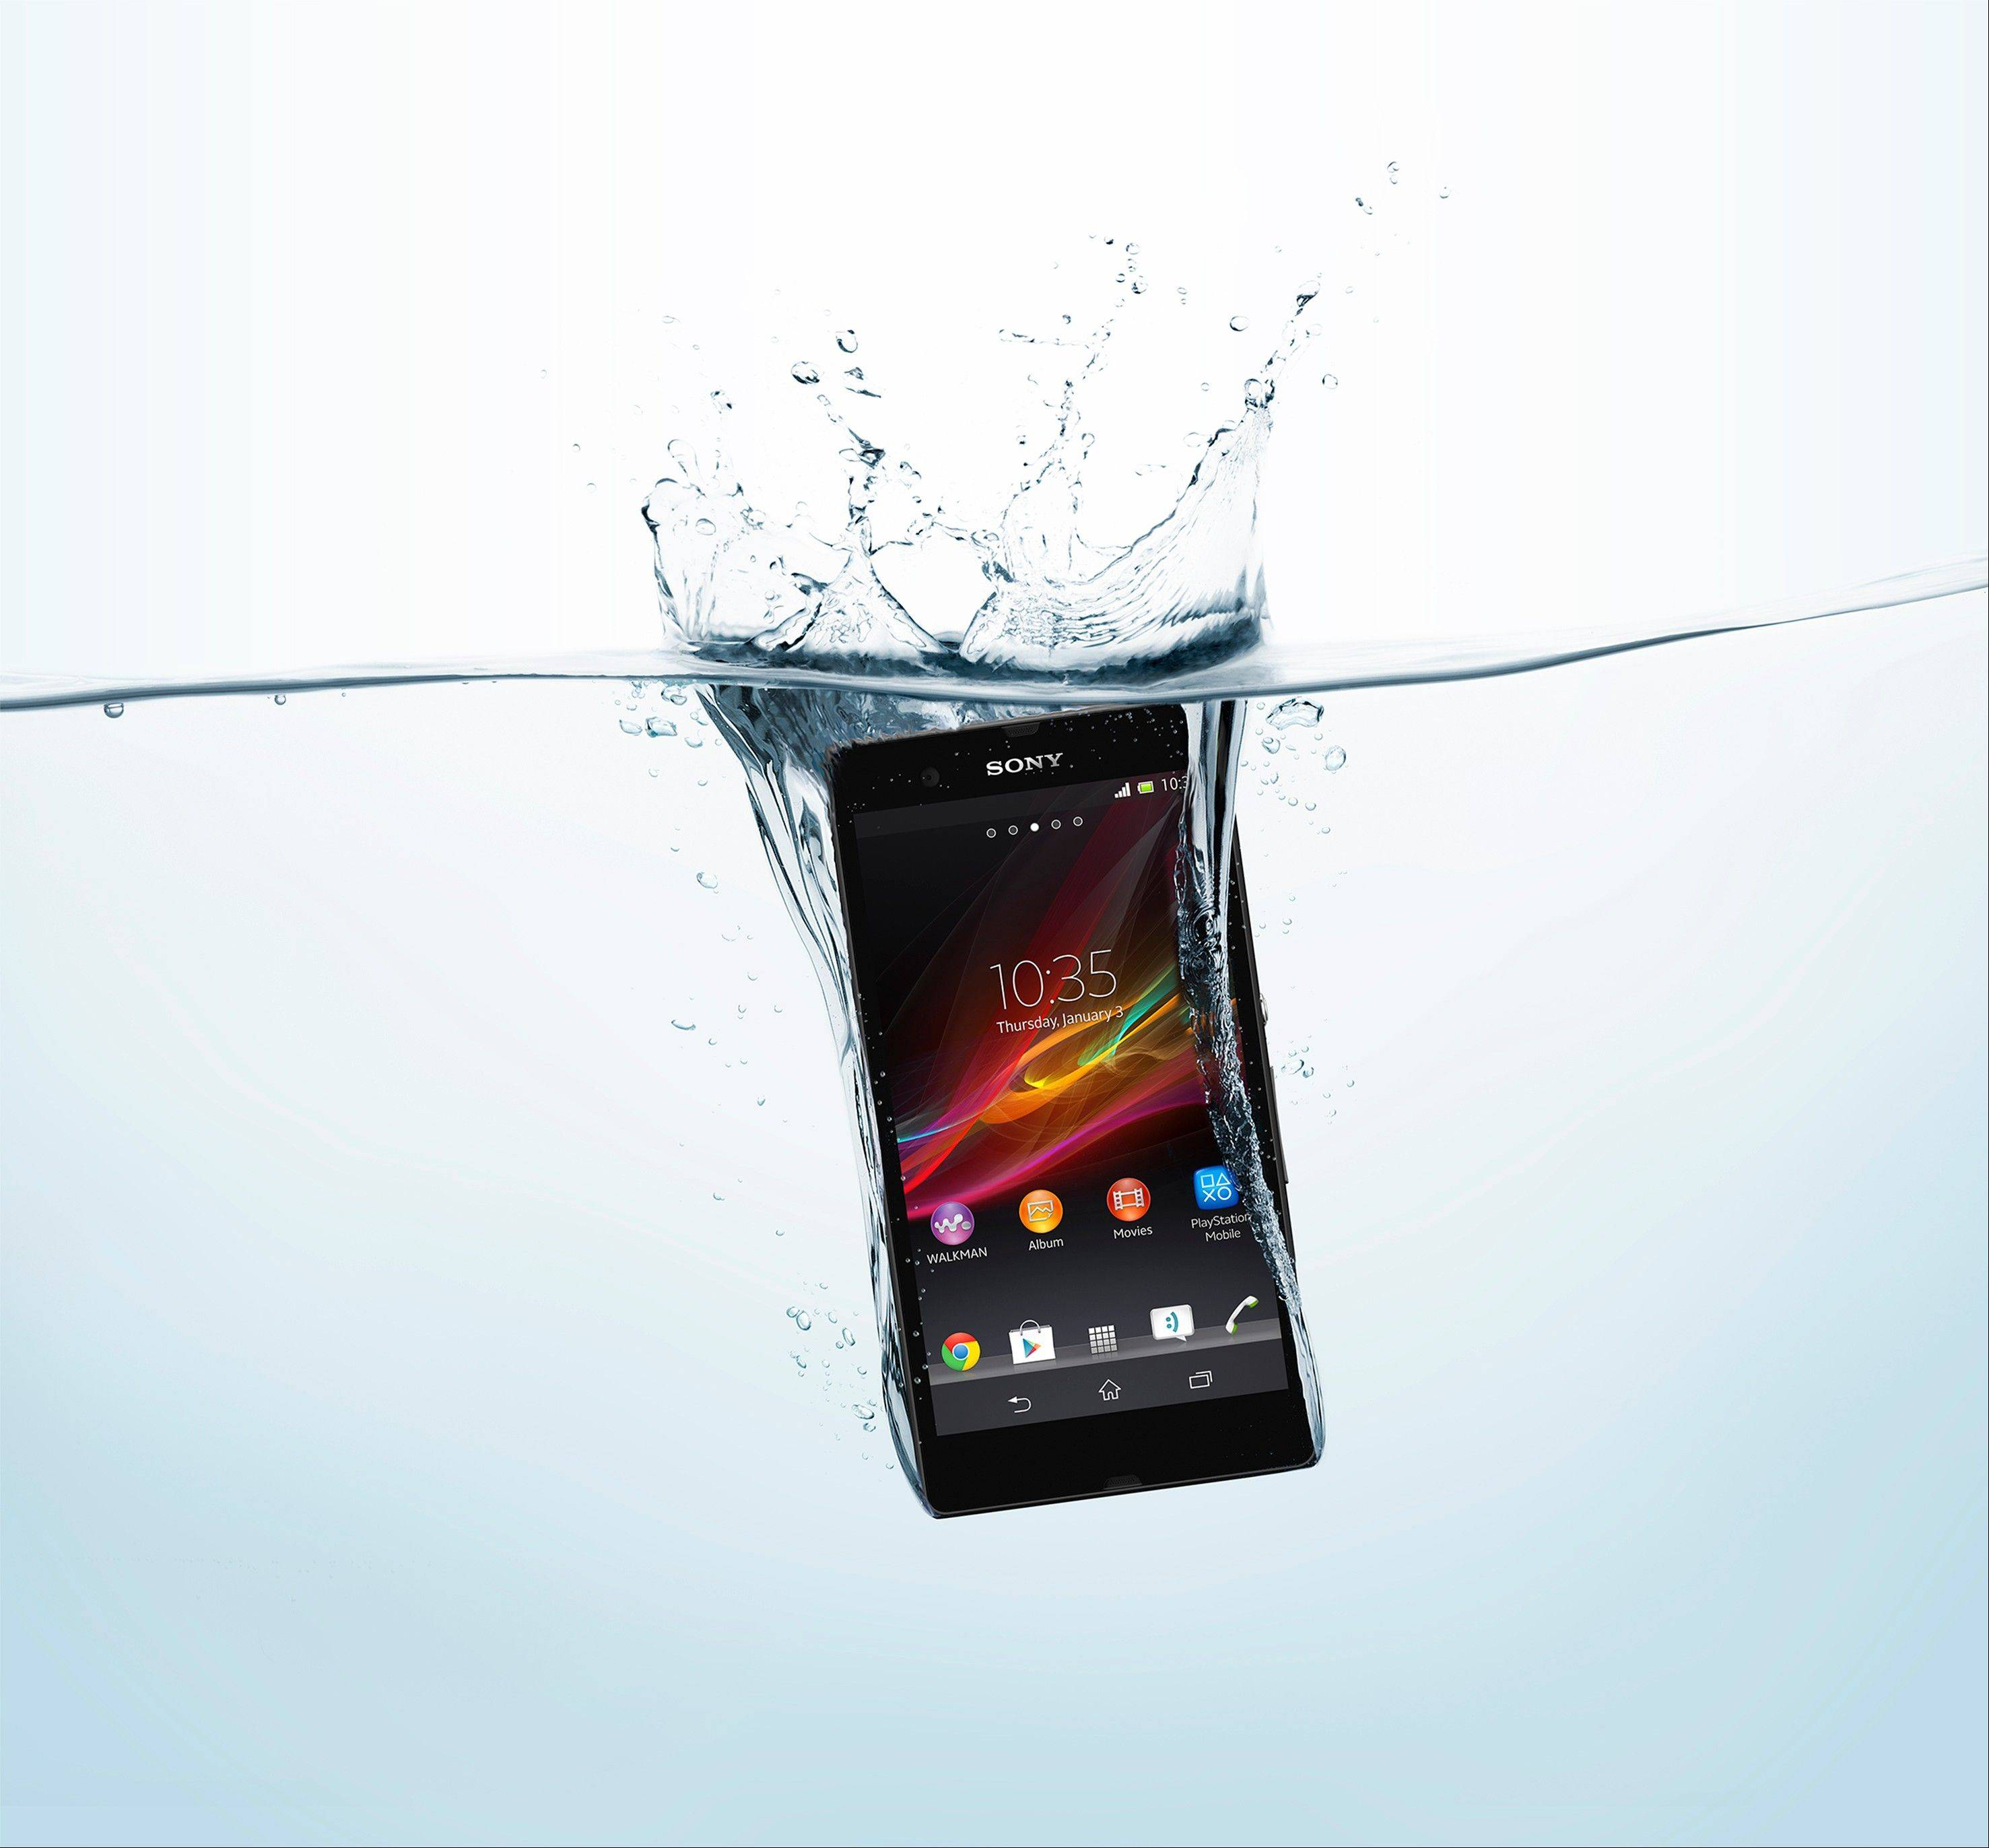 Review: Sony phone's water resistance stands out